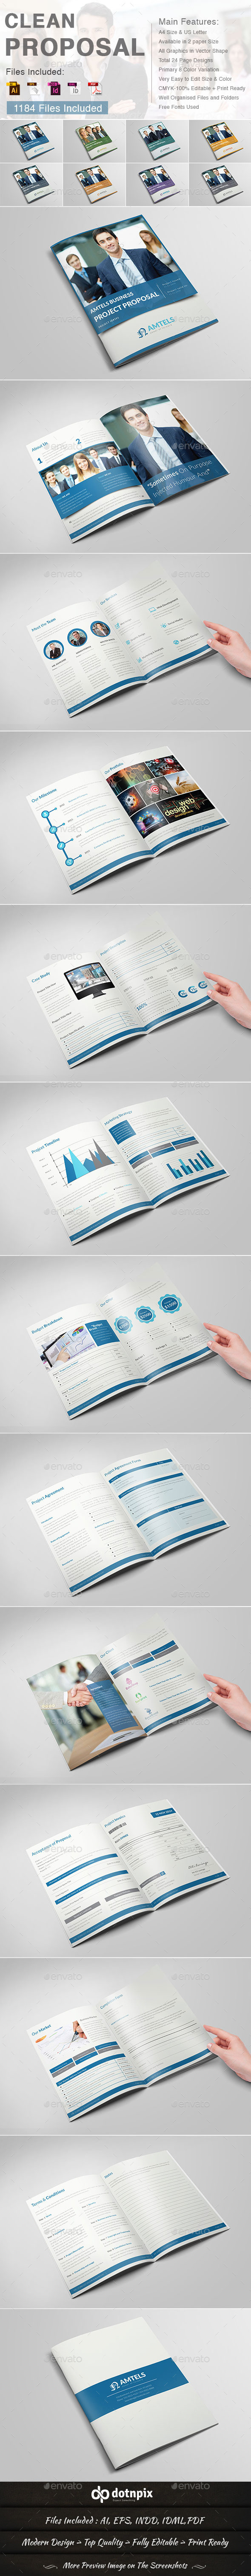 GraphicRiver Clean Proposal 9603153